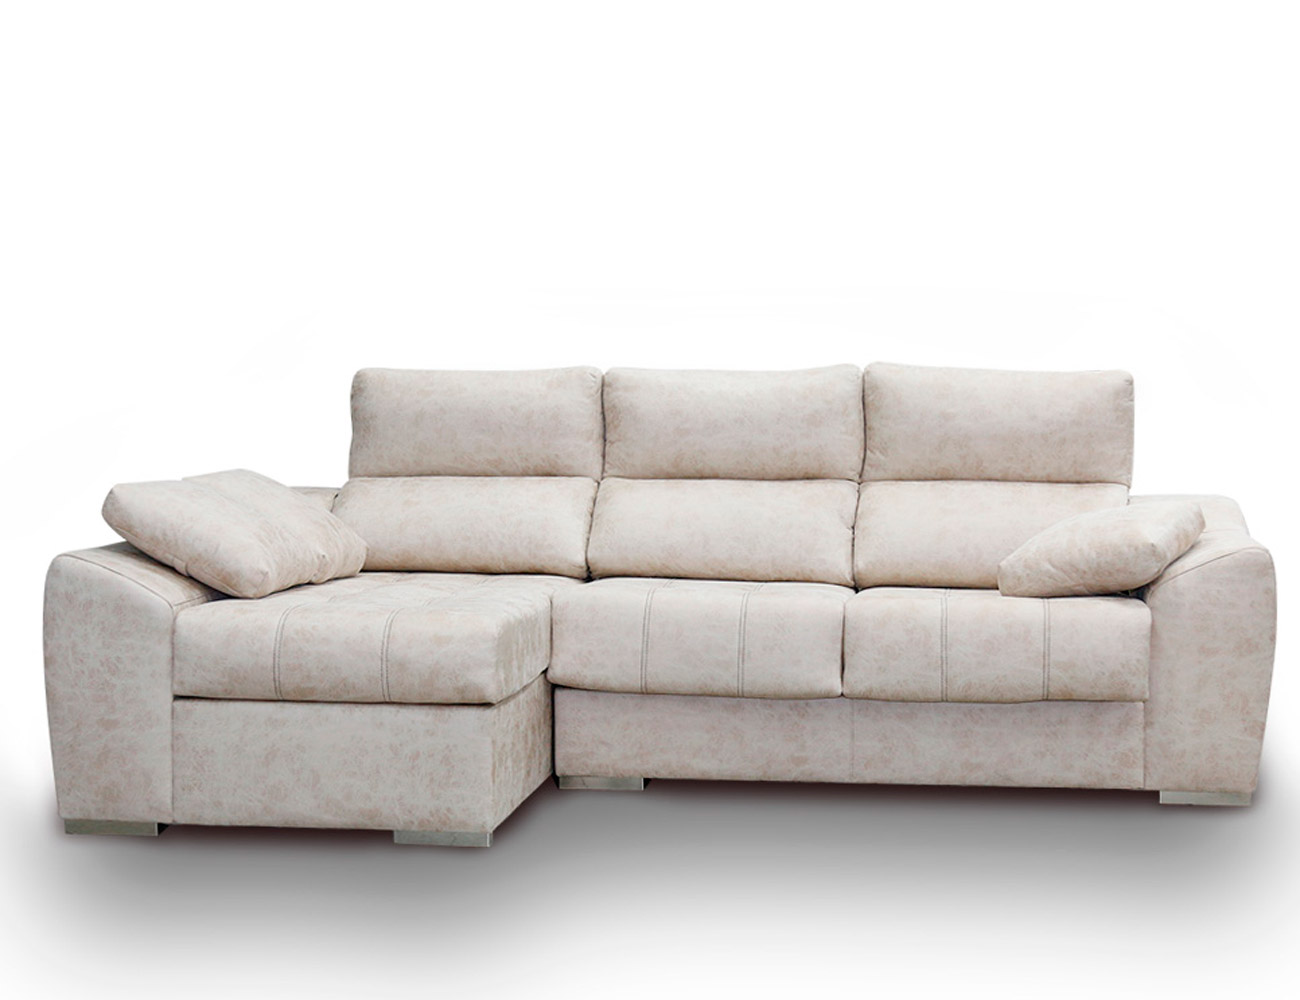 Sofa chaiselongue anti manchas beig blanco25